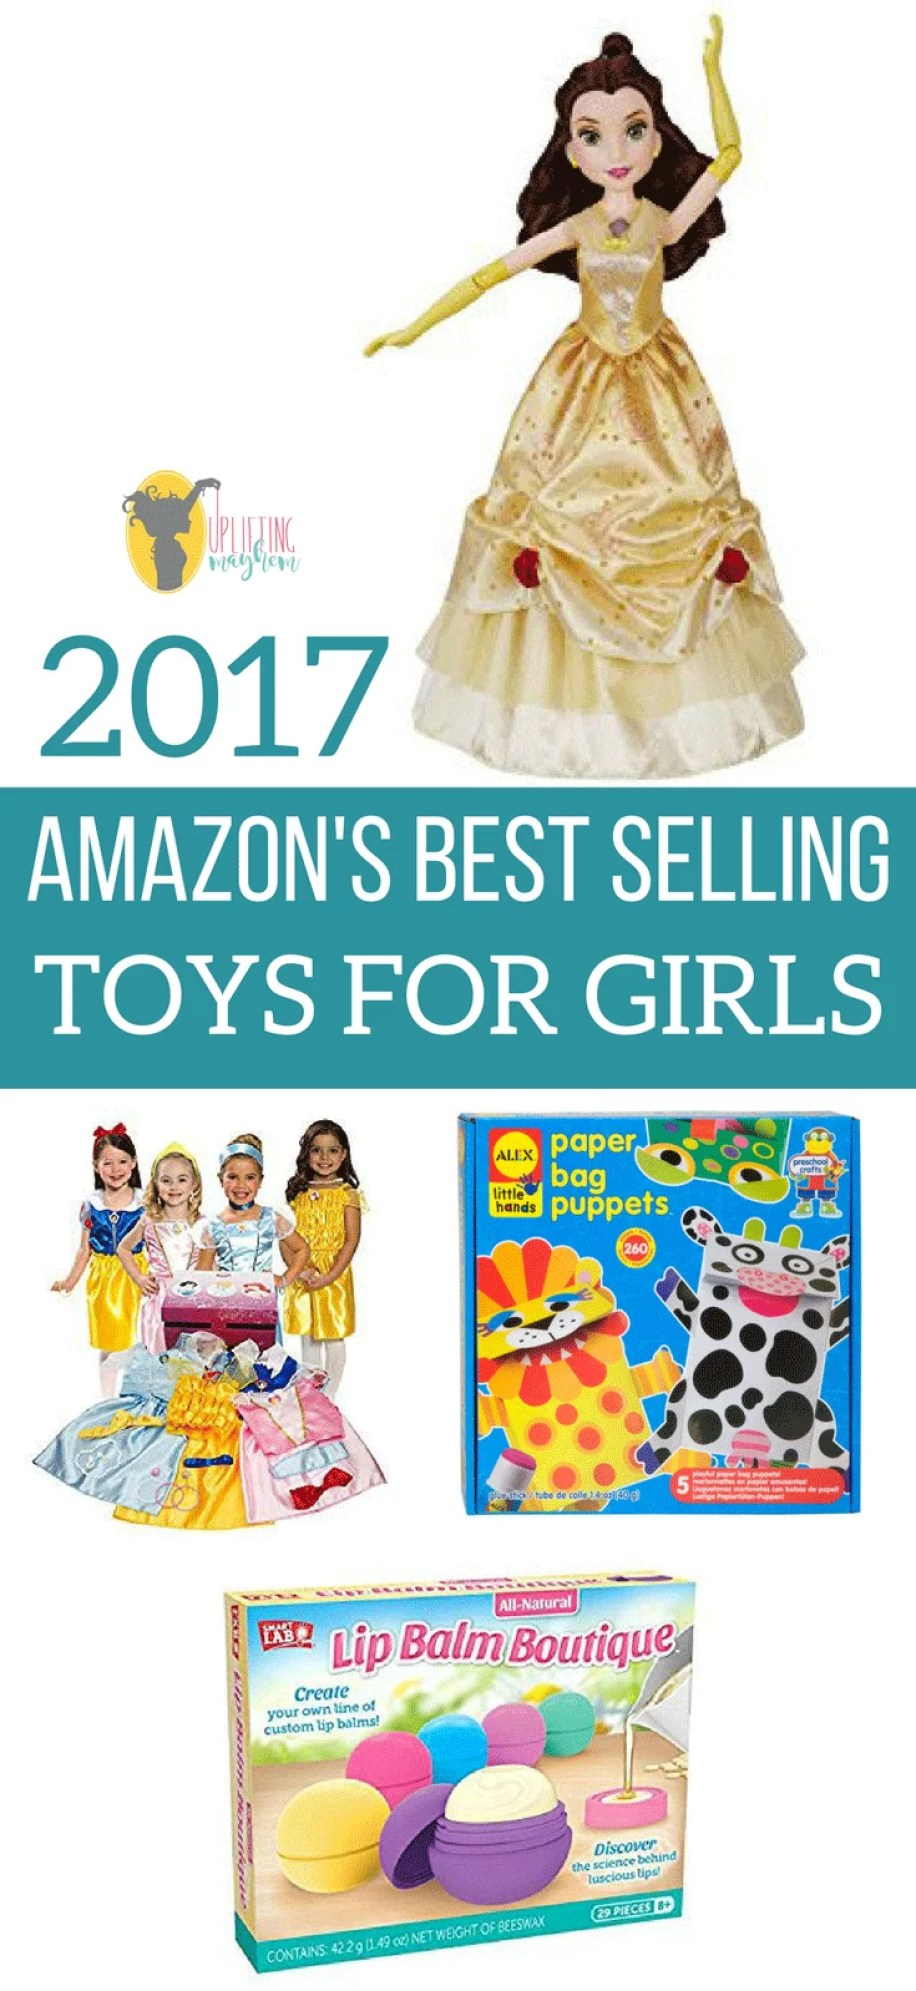 Bestselling Toy Brands On Amazon Com: Amazon's Best-Selling Toys For Girls 2017